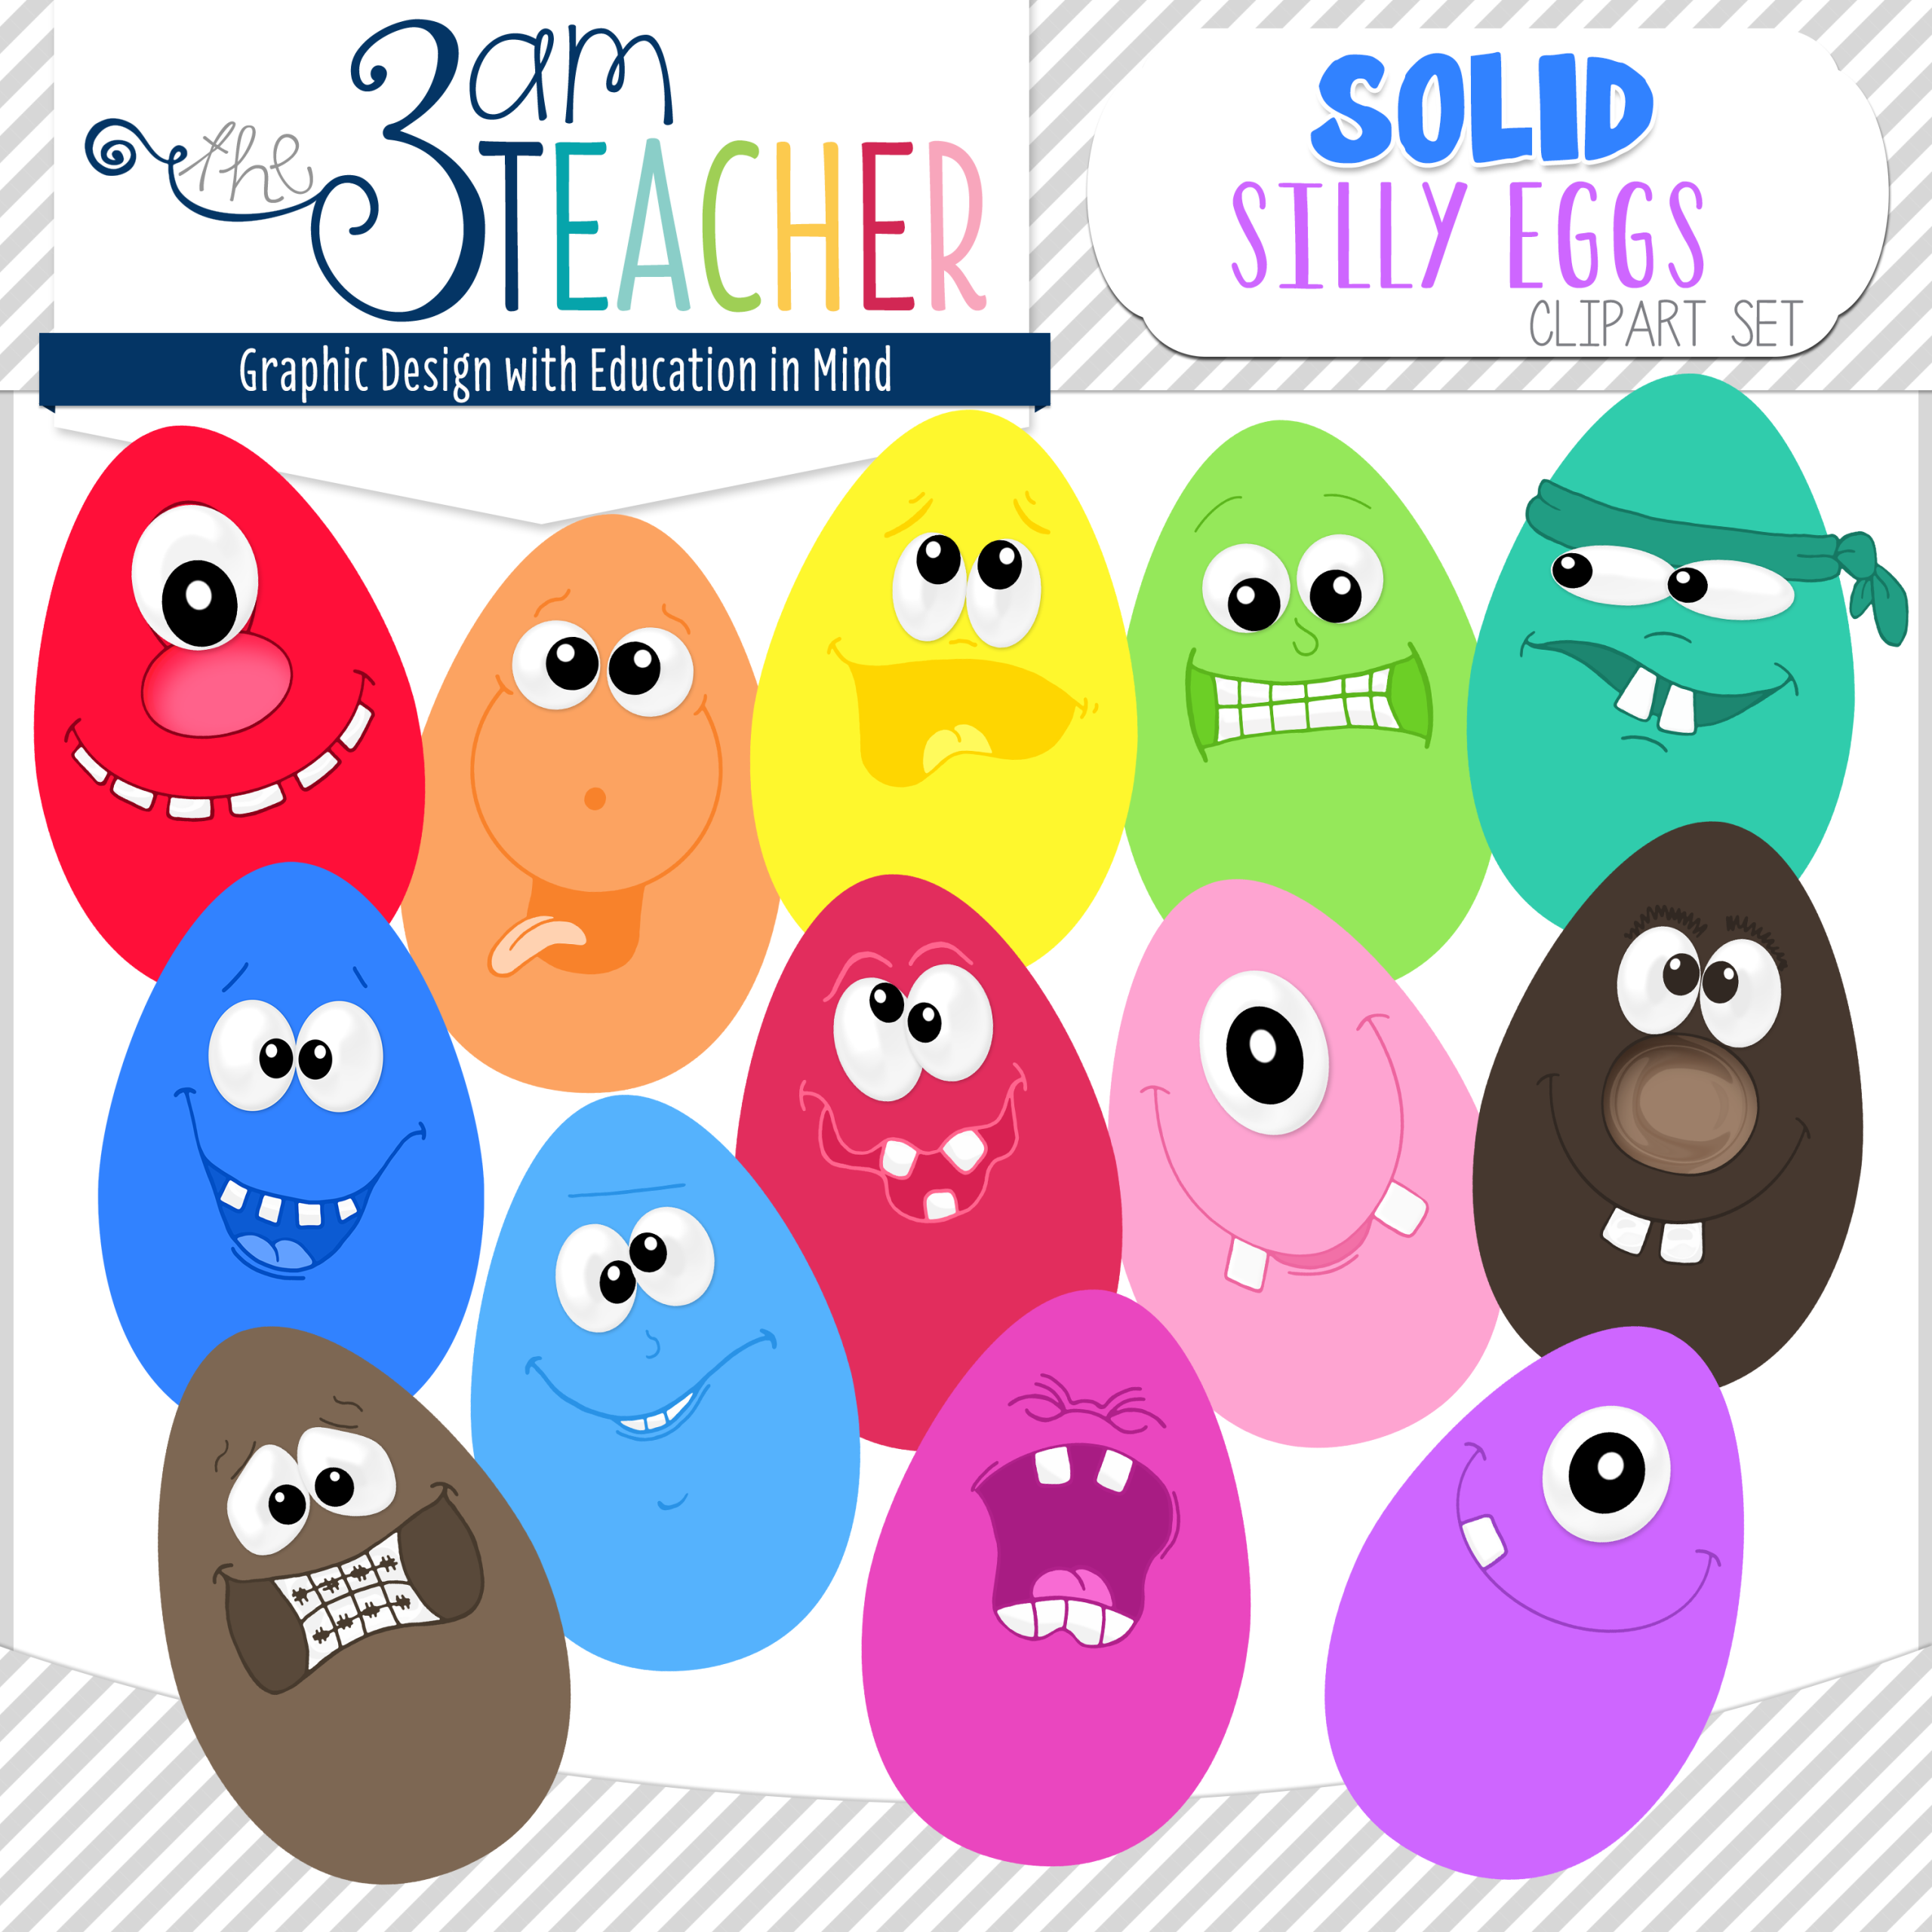 Fun Silly Eggs in Bright Solid Colors Clip Art Set.